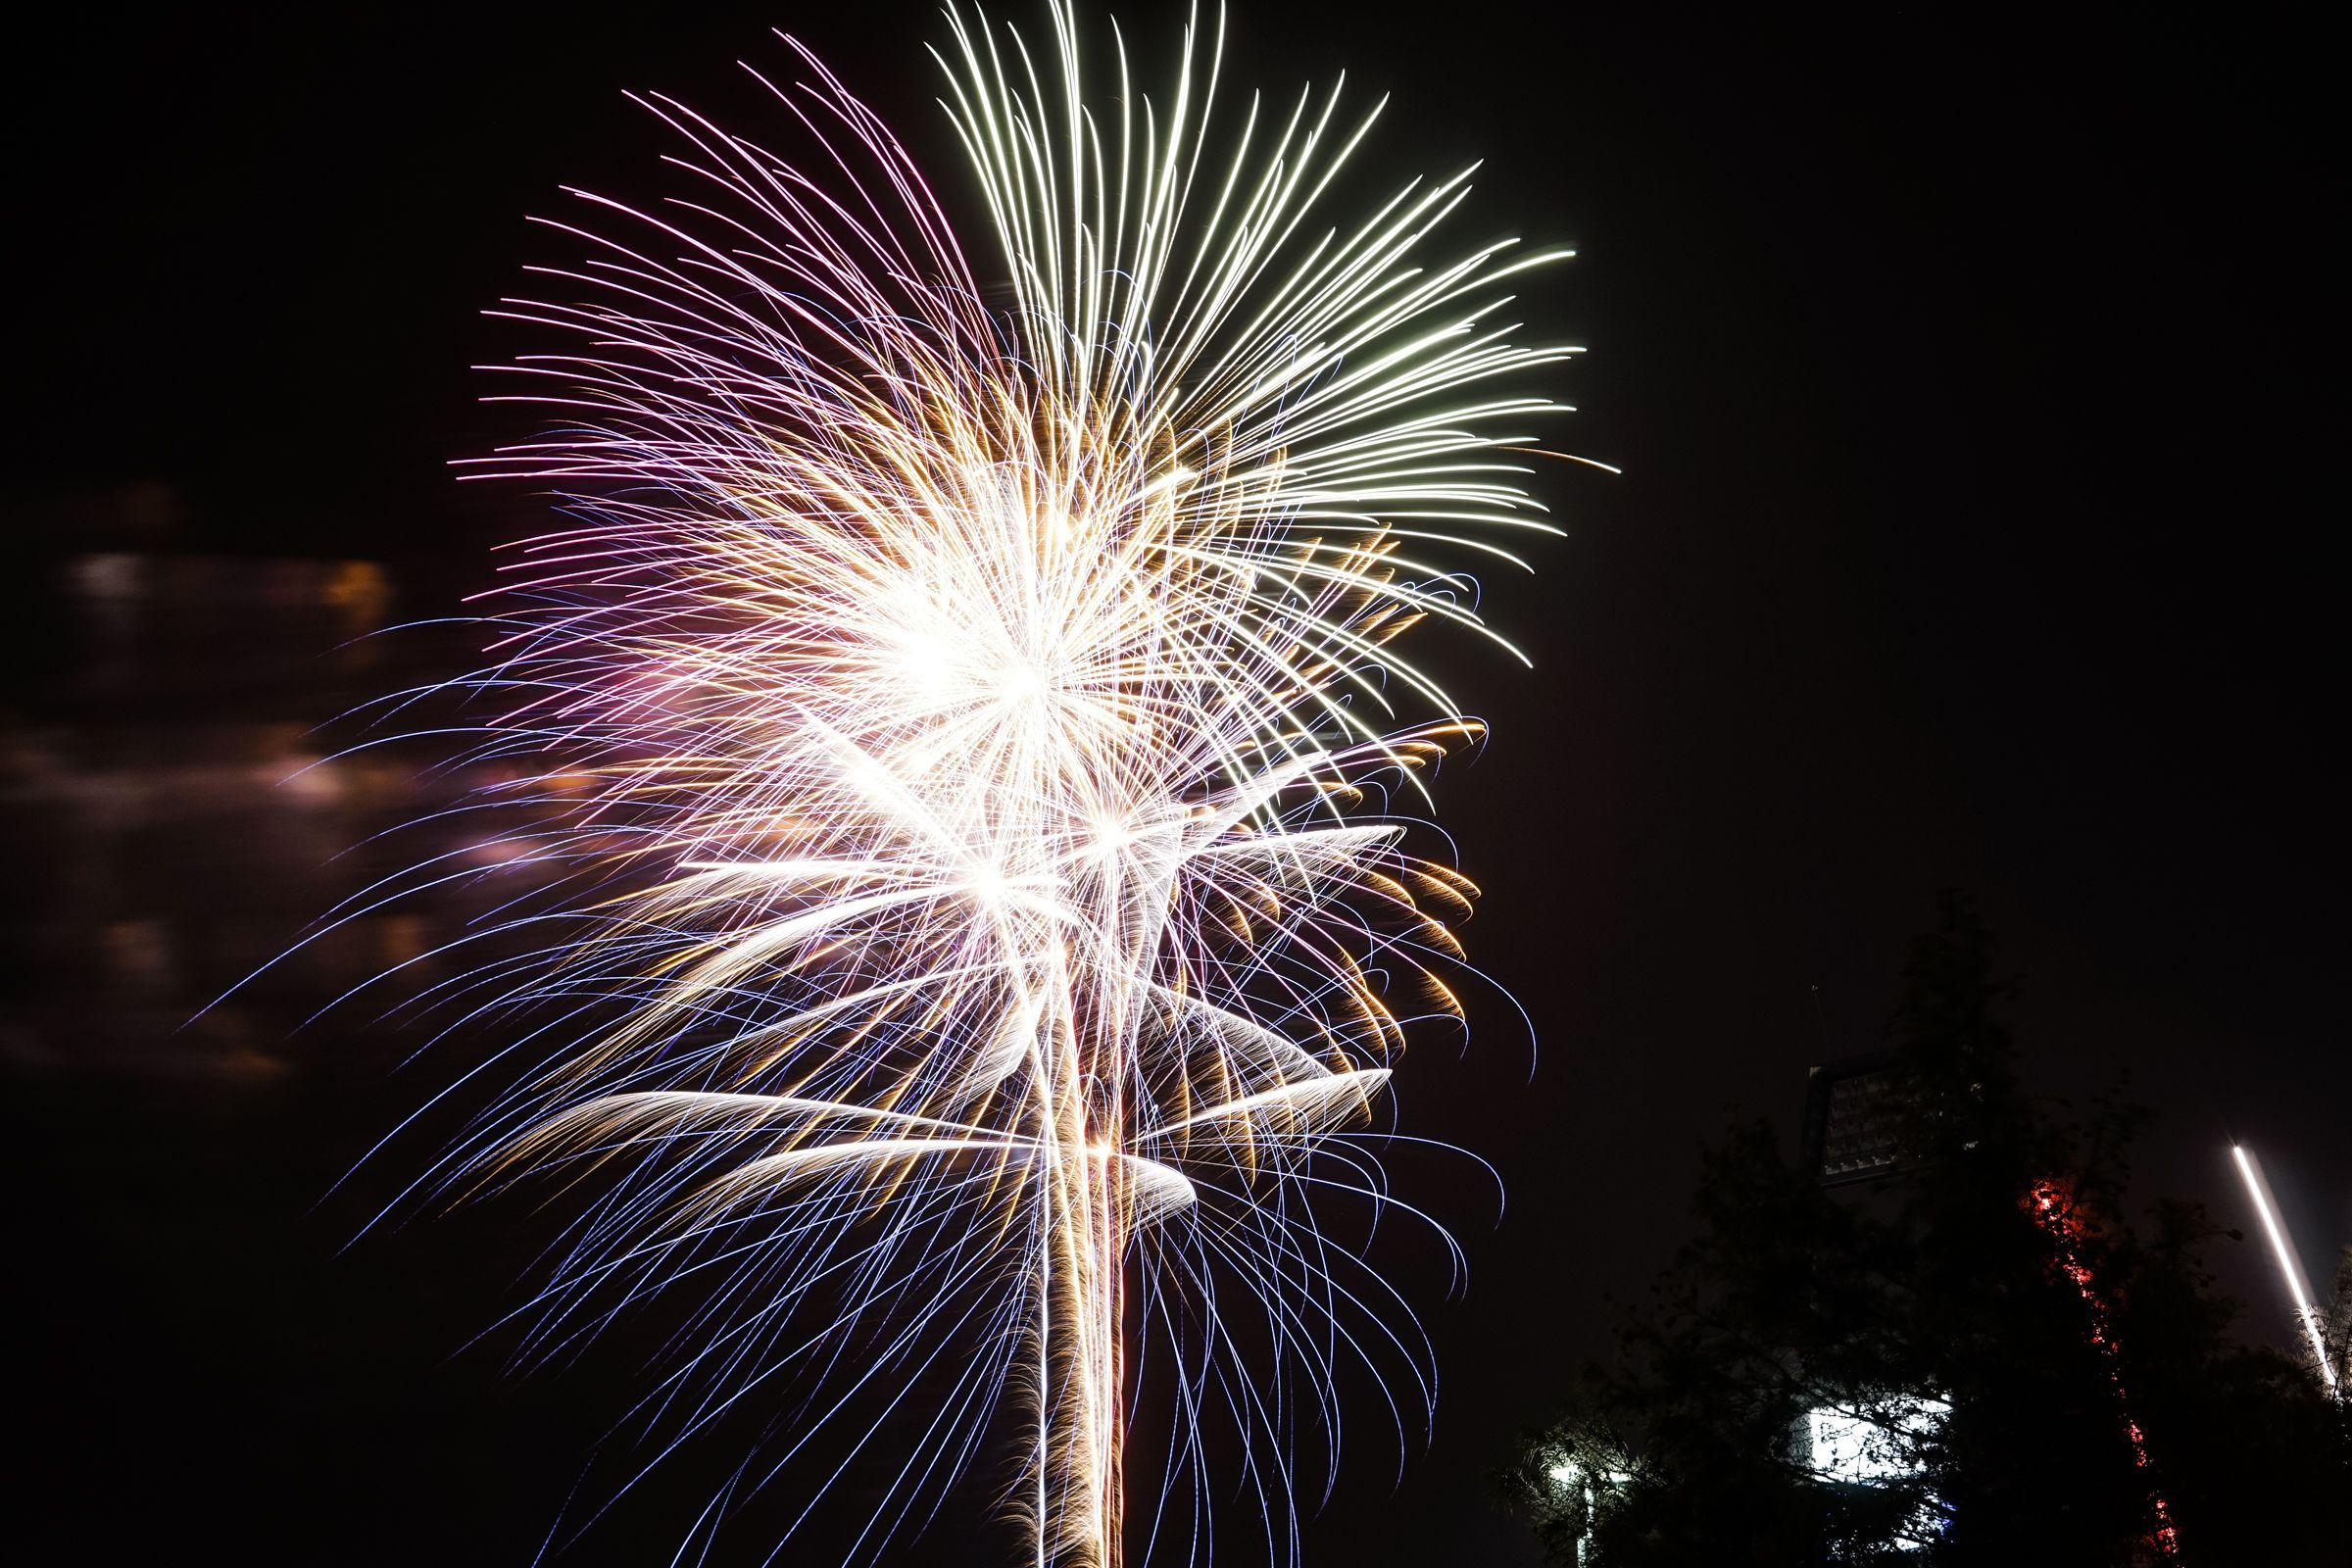 Tips with Exact Camera Settings for Firework Photos! Follow these 7 tips and exact camera settings for firework photos this summer! I love knowing other photographers' settings to inspire creativity and fun!Follow these 7 tips and exact camera settings for firework photos this summer! I love knowing other photographers' settings to inspire creativity and fun!